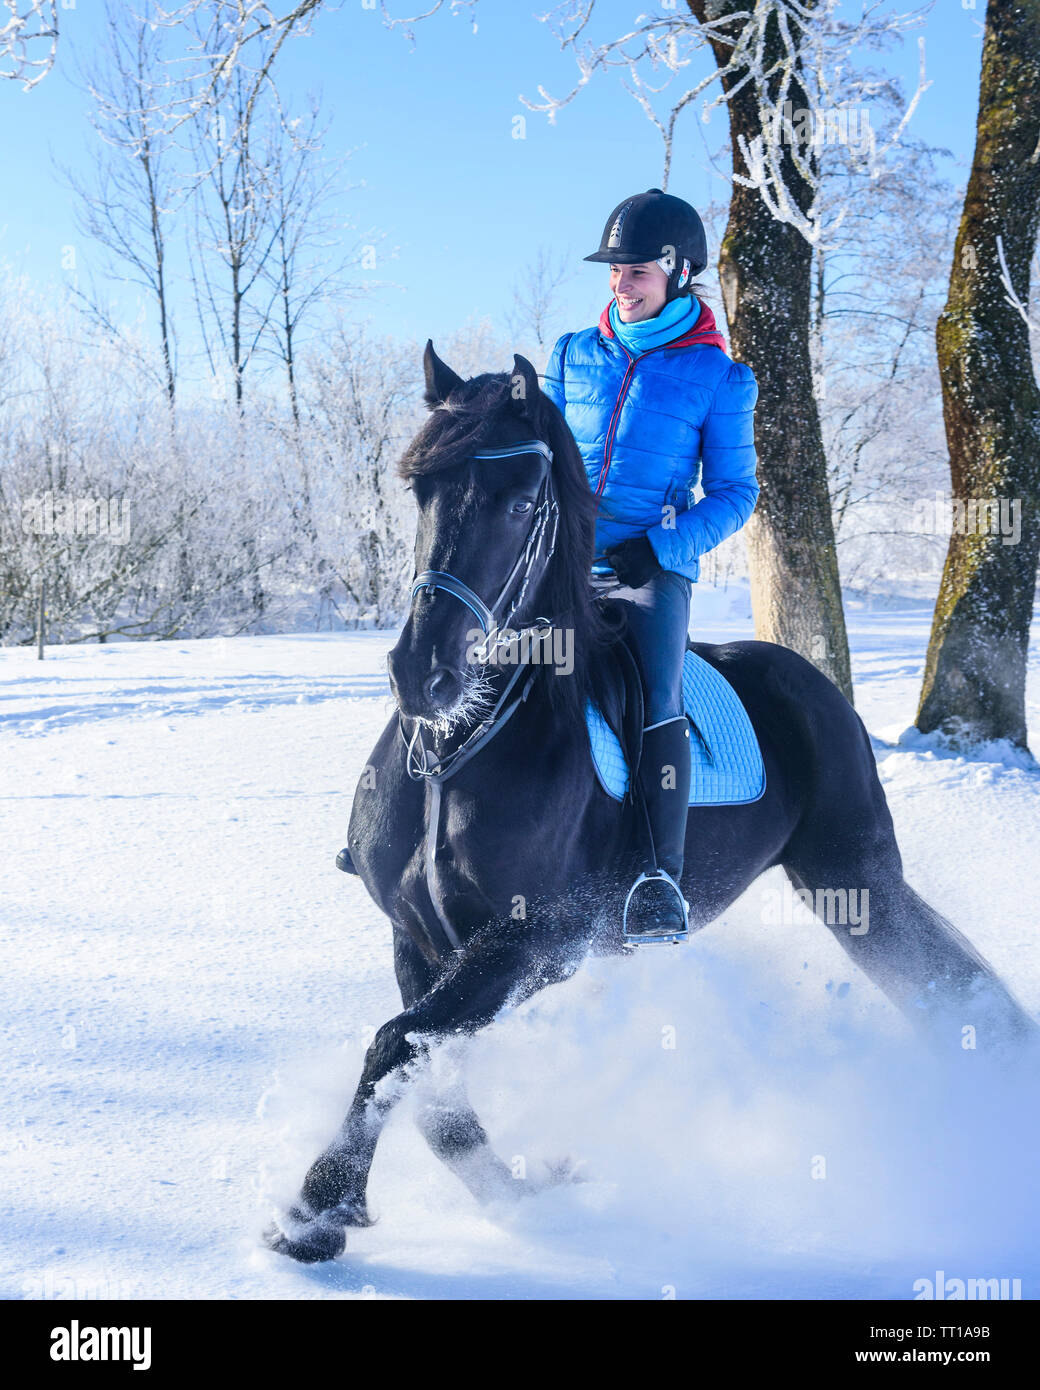 Sporty female rider doing a ride into the snowy nature in Allgäu - Stock Image